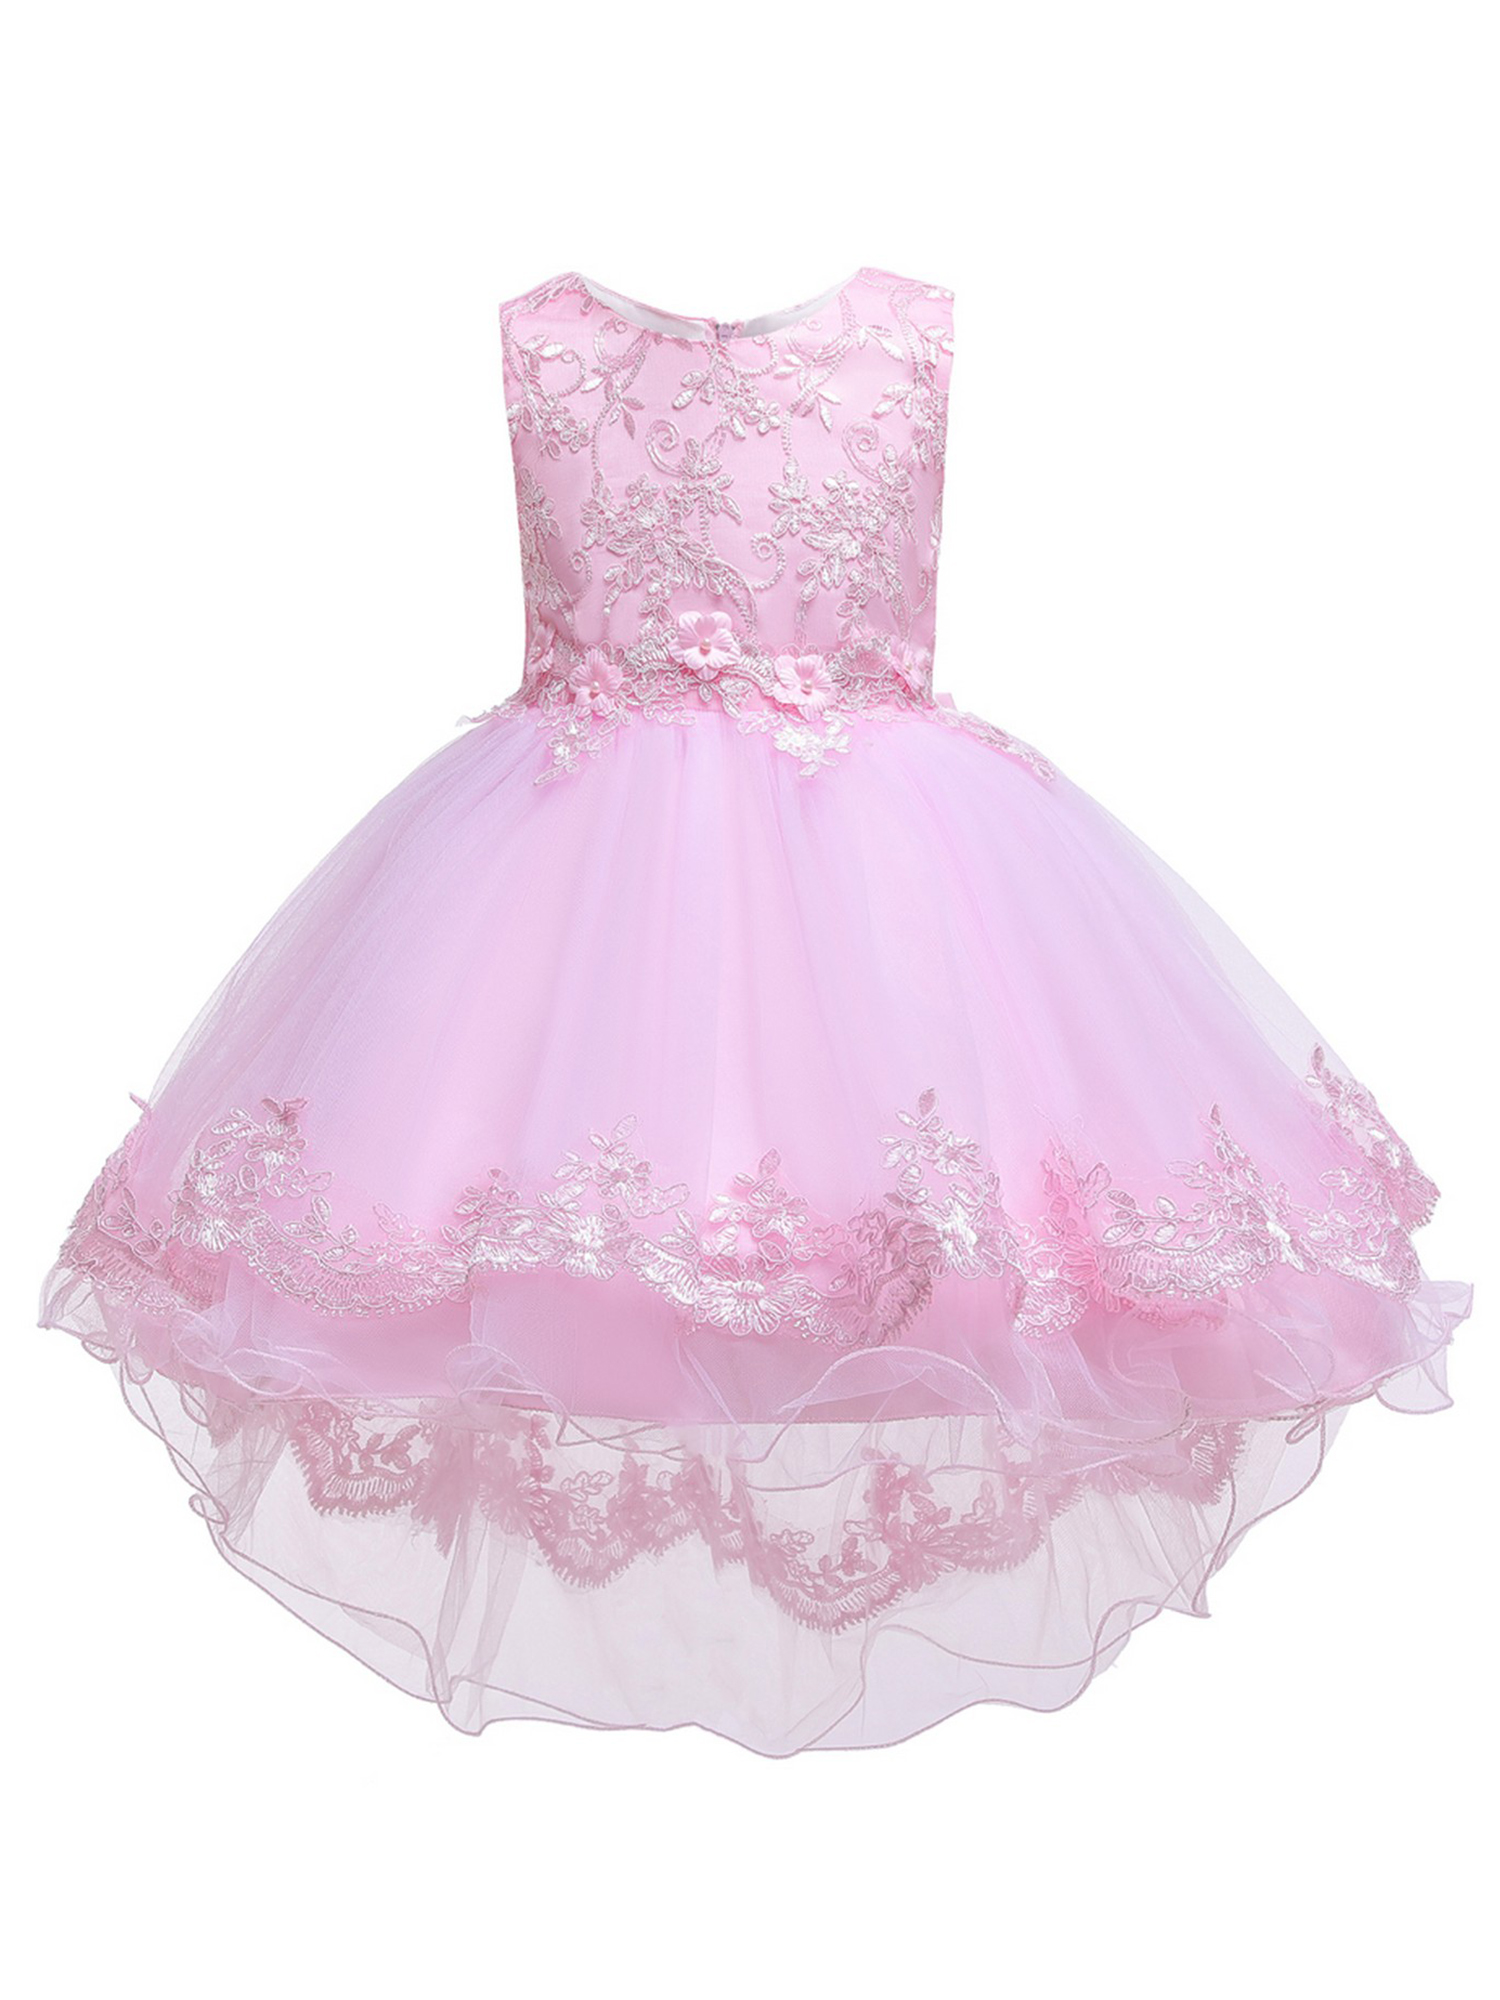 Rainkids Little Girls Champagne Sequin Bow Tulle Hi-Low Flower Girl Dress 3-6